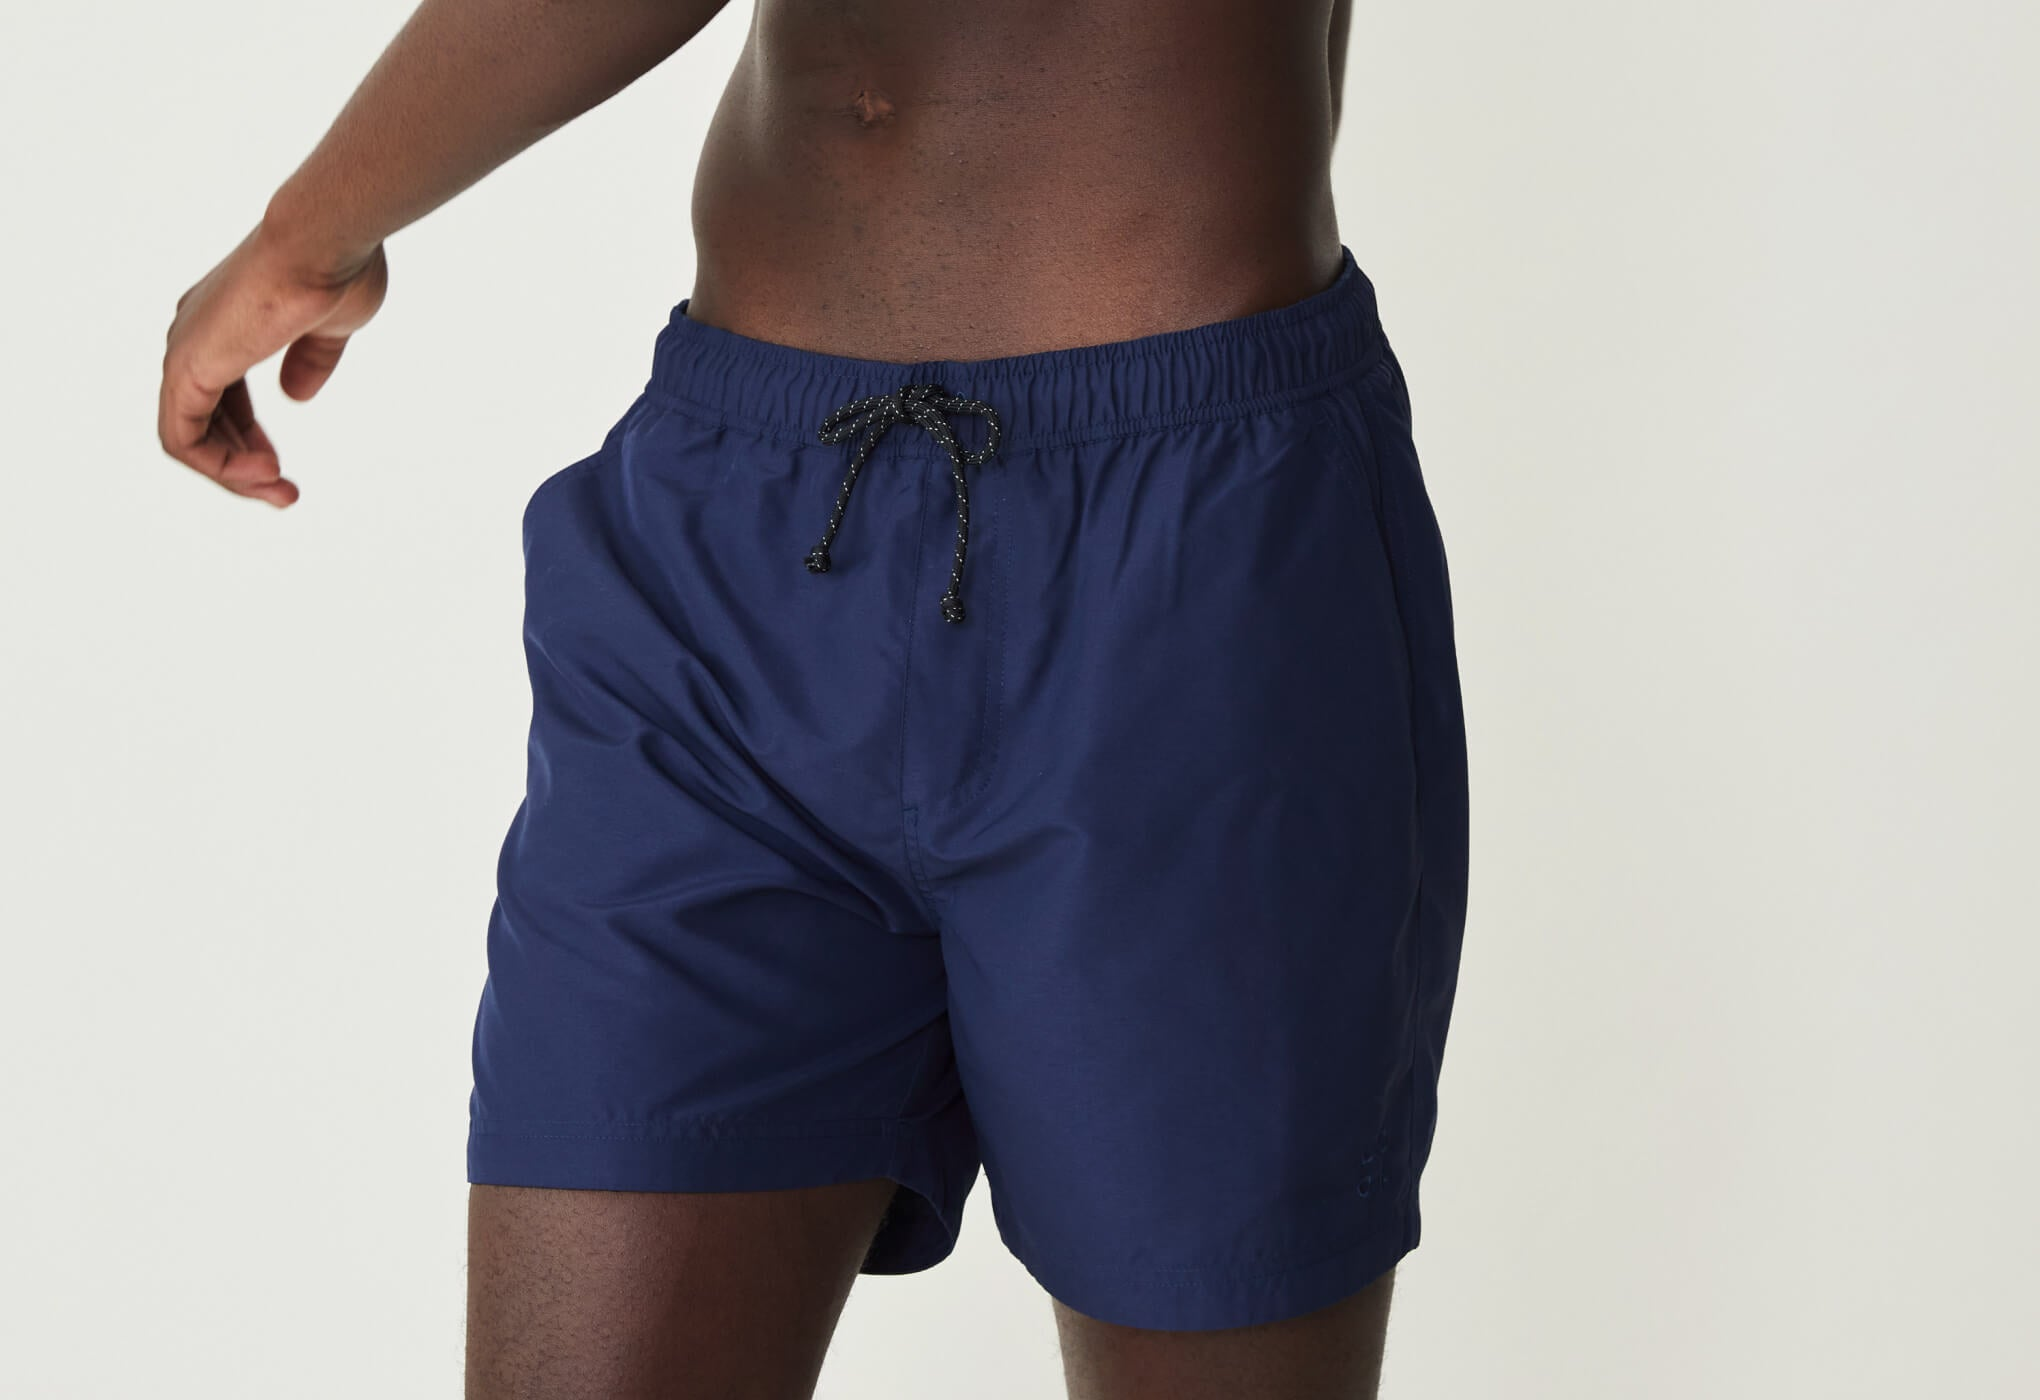 maillot de bain homme loom made in portugal